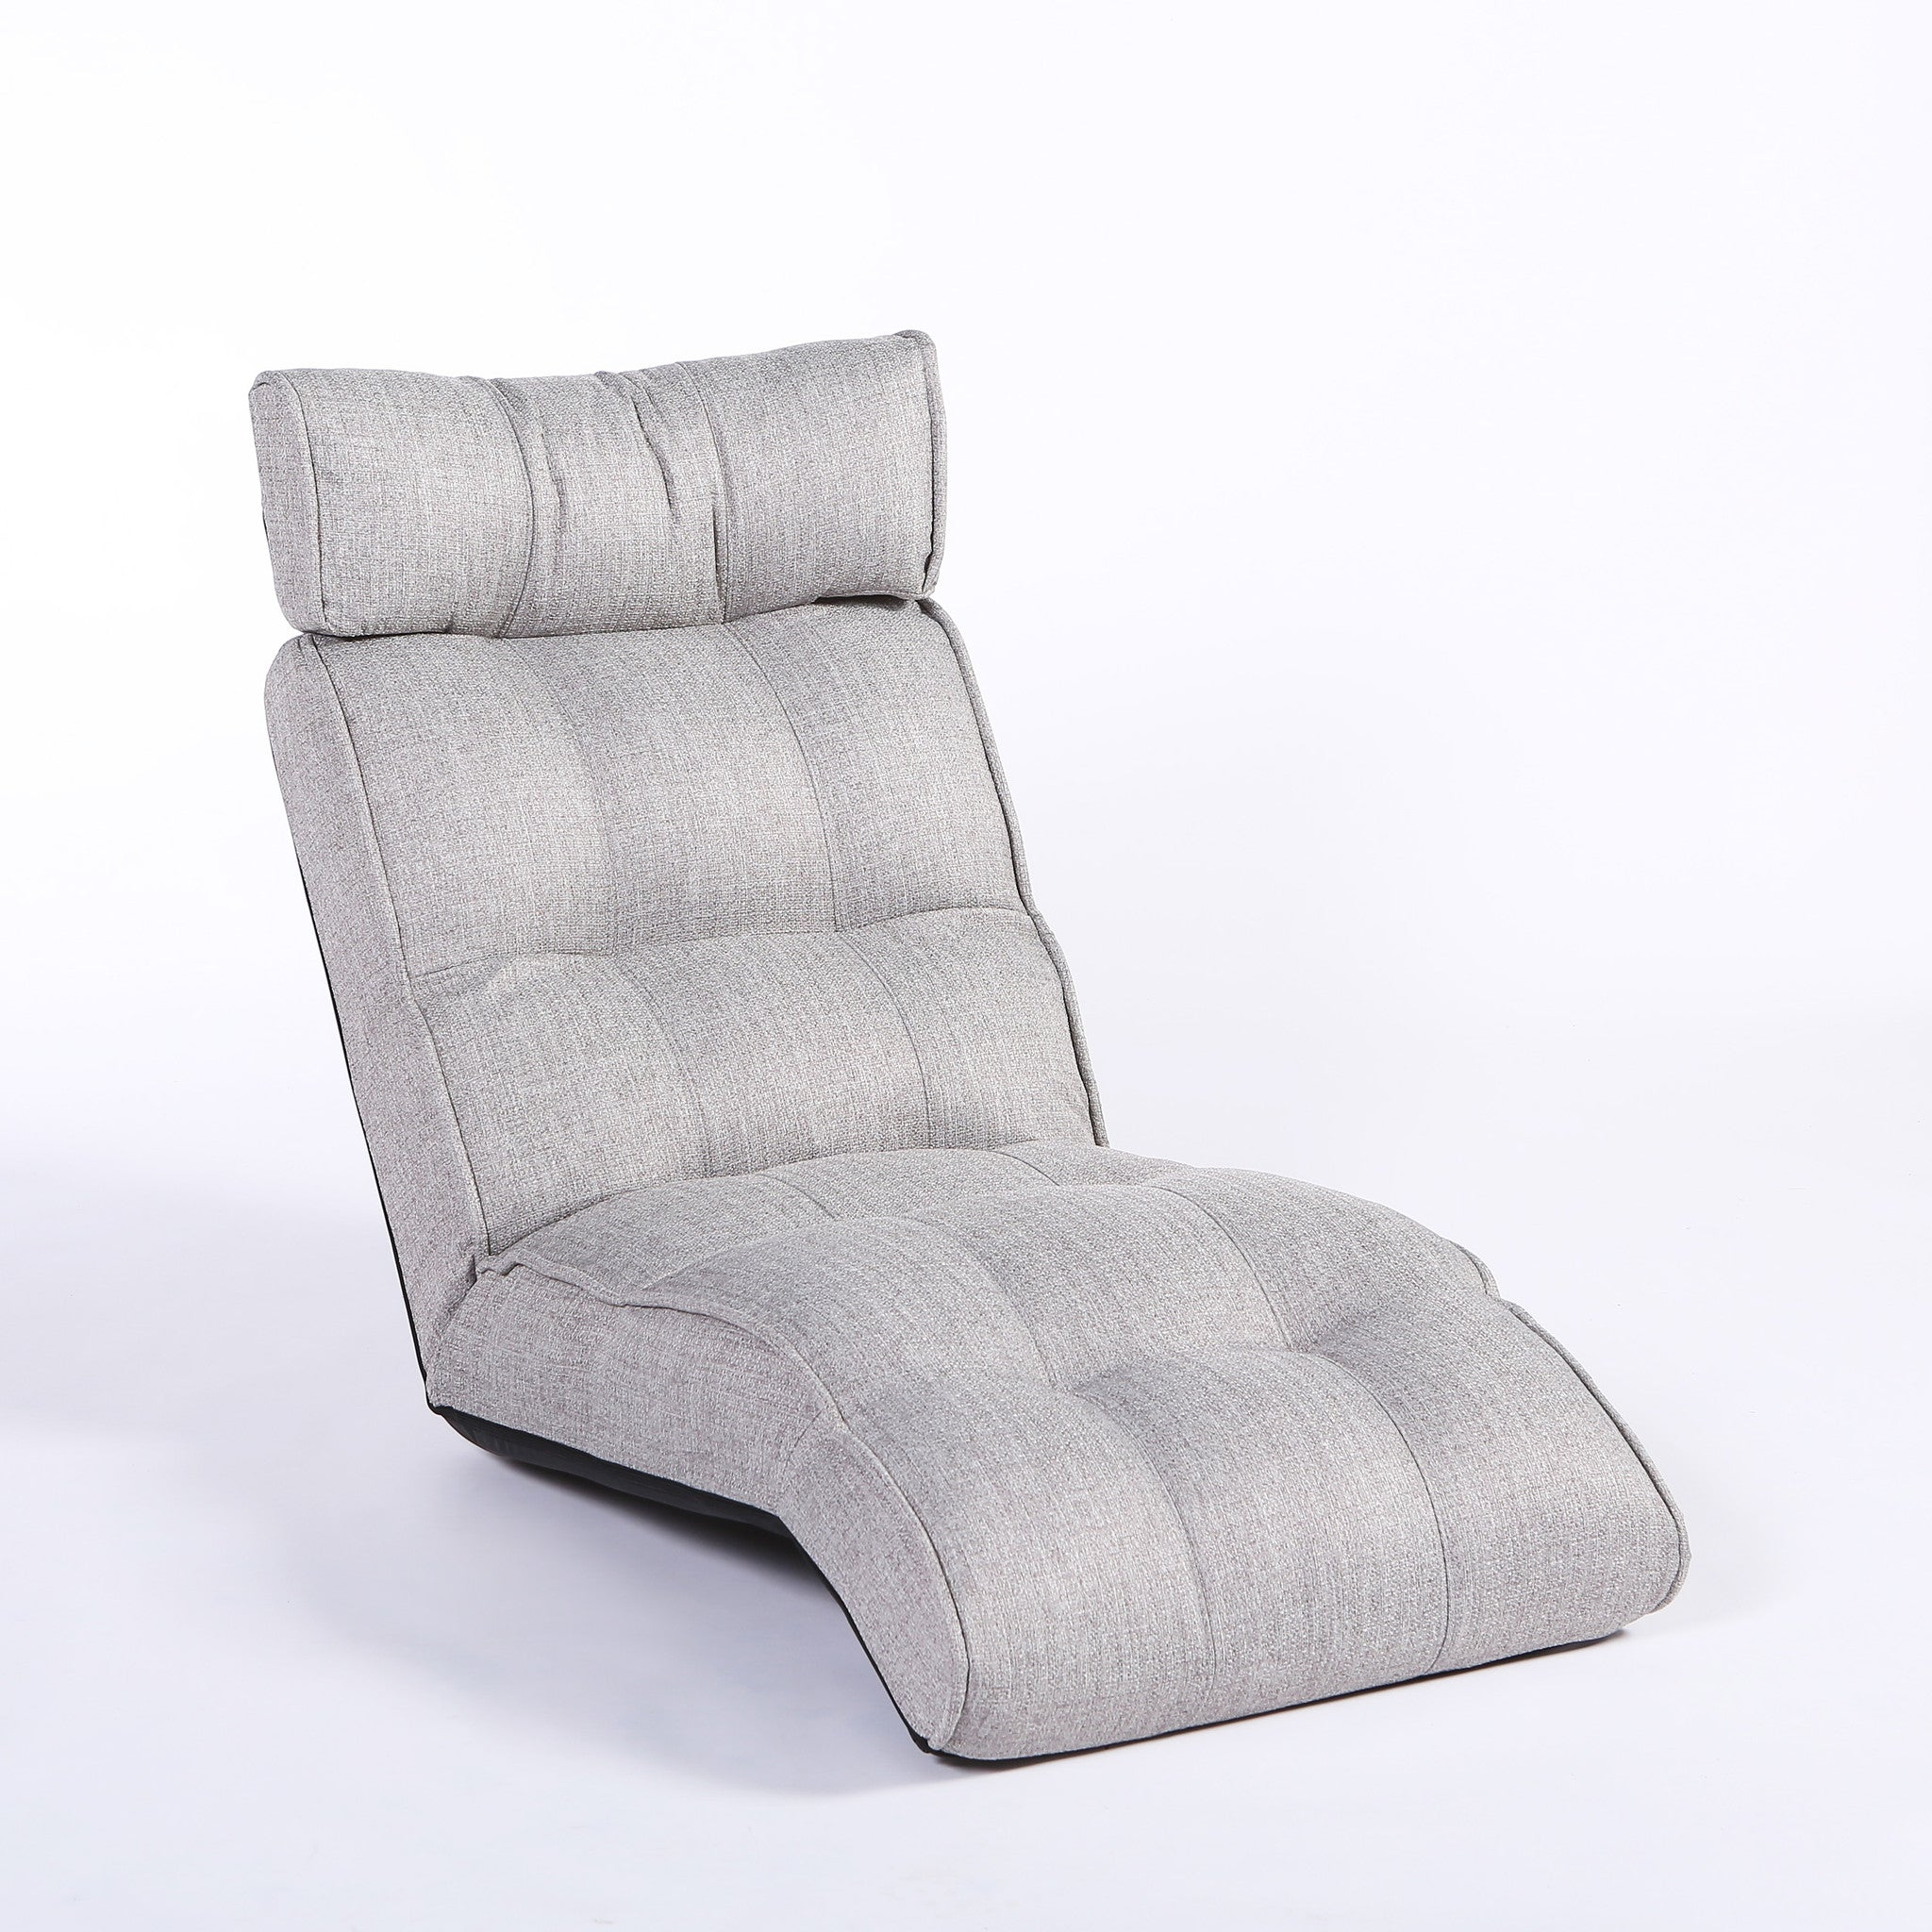 Gray Floor Sofa Chairs Recliner Plus Sofa Bed By Cozy Kino Chairs